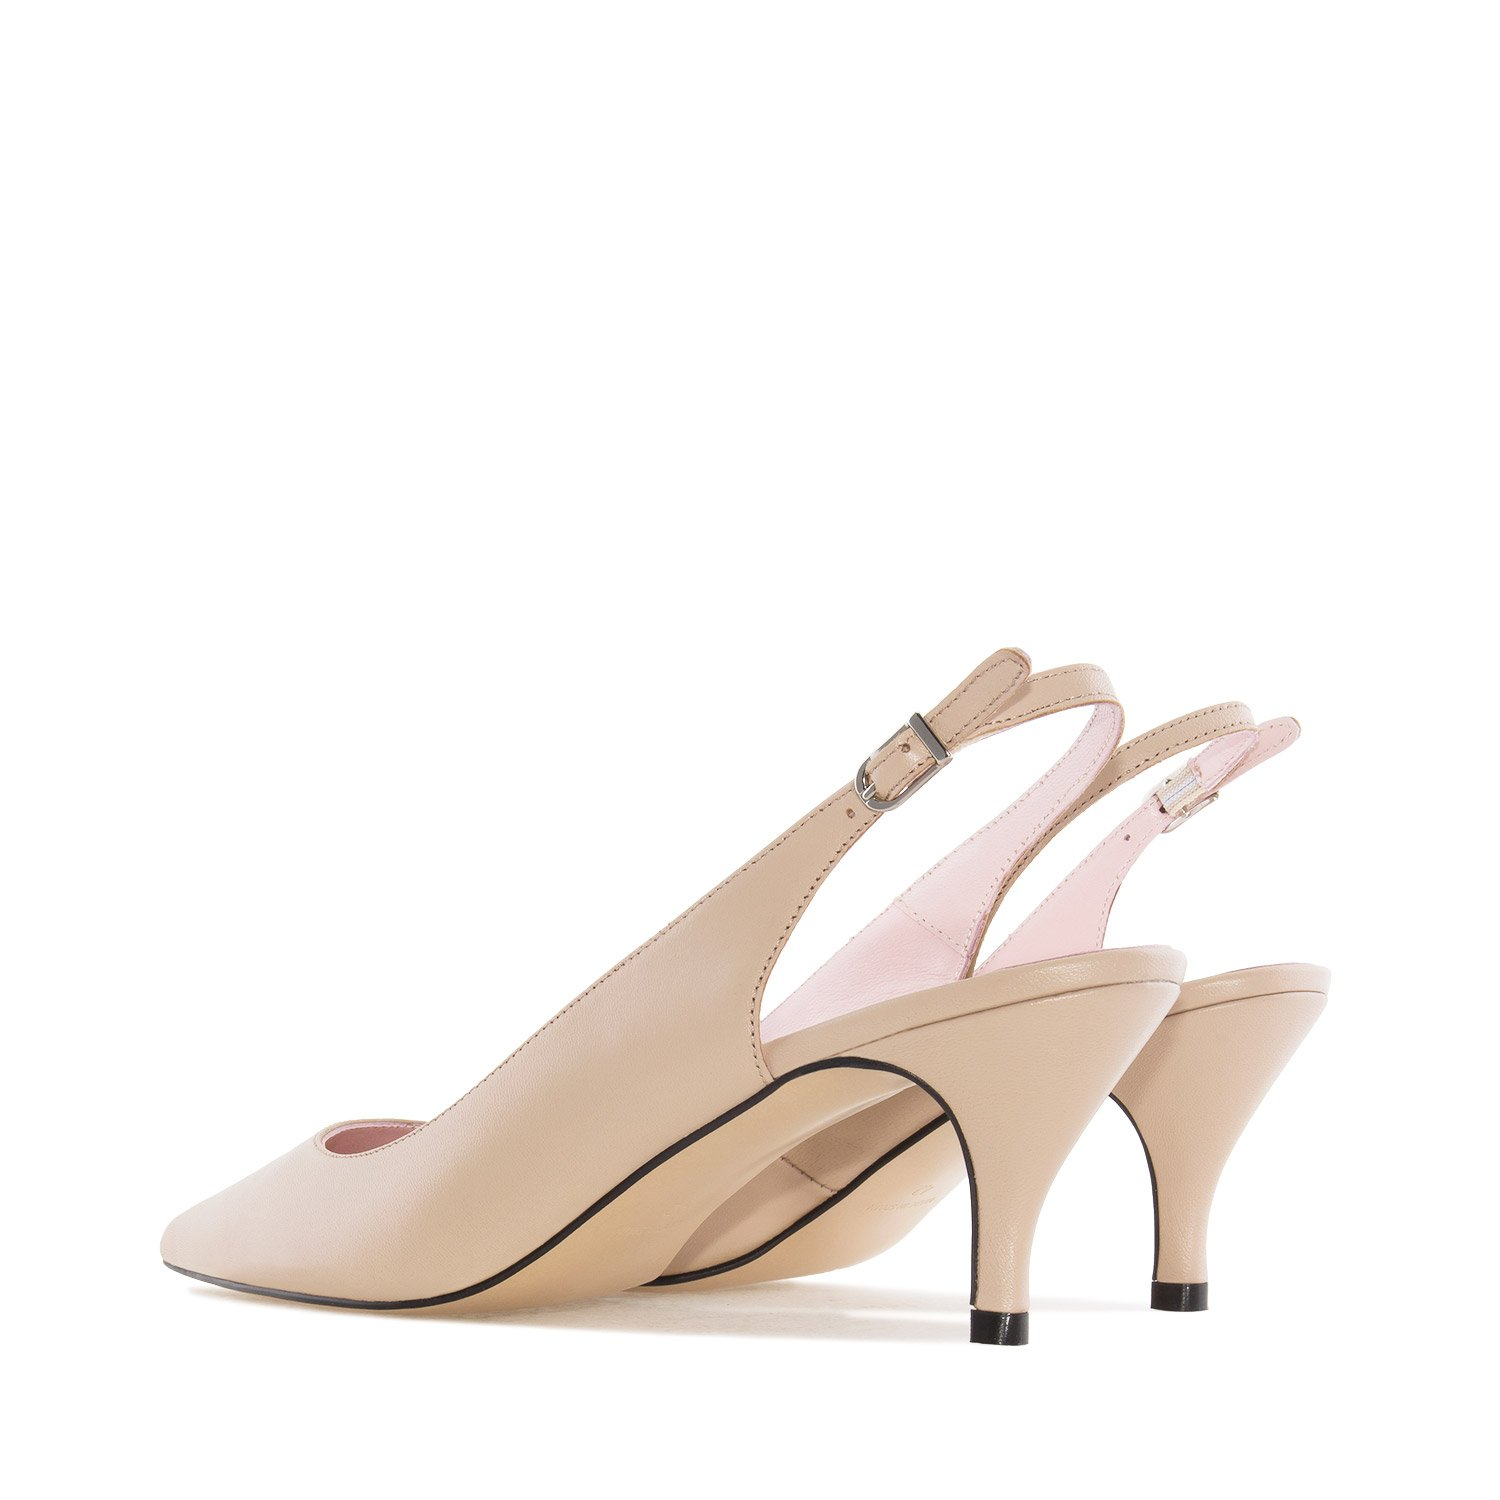 Andres Machado Fine Toe Slingback Shoes in Beige Leather, 43 M EU/11.5 B (M) US by Andres Machado (Image #3)